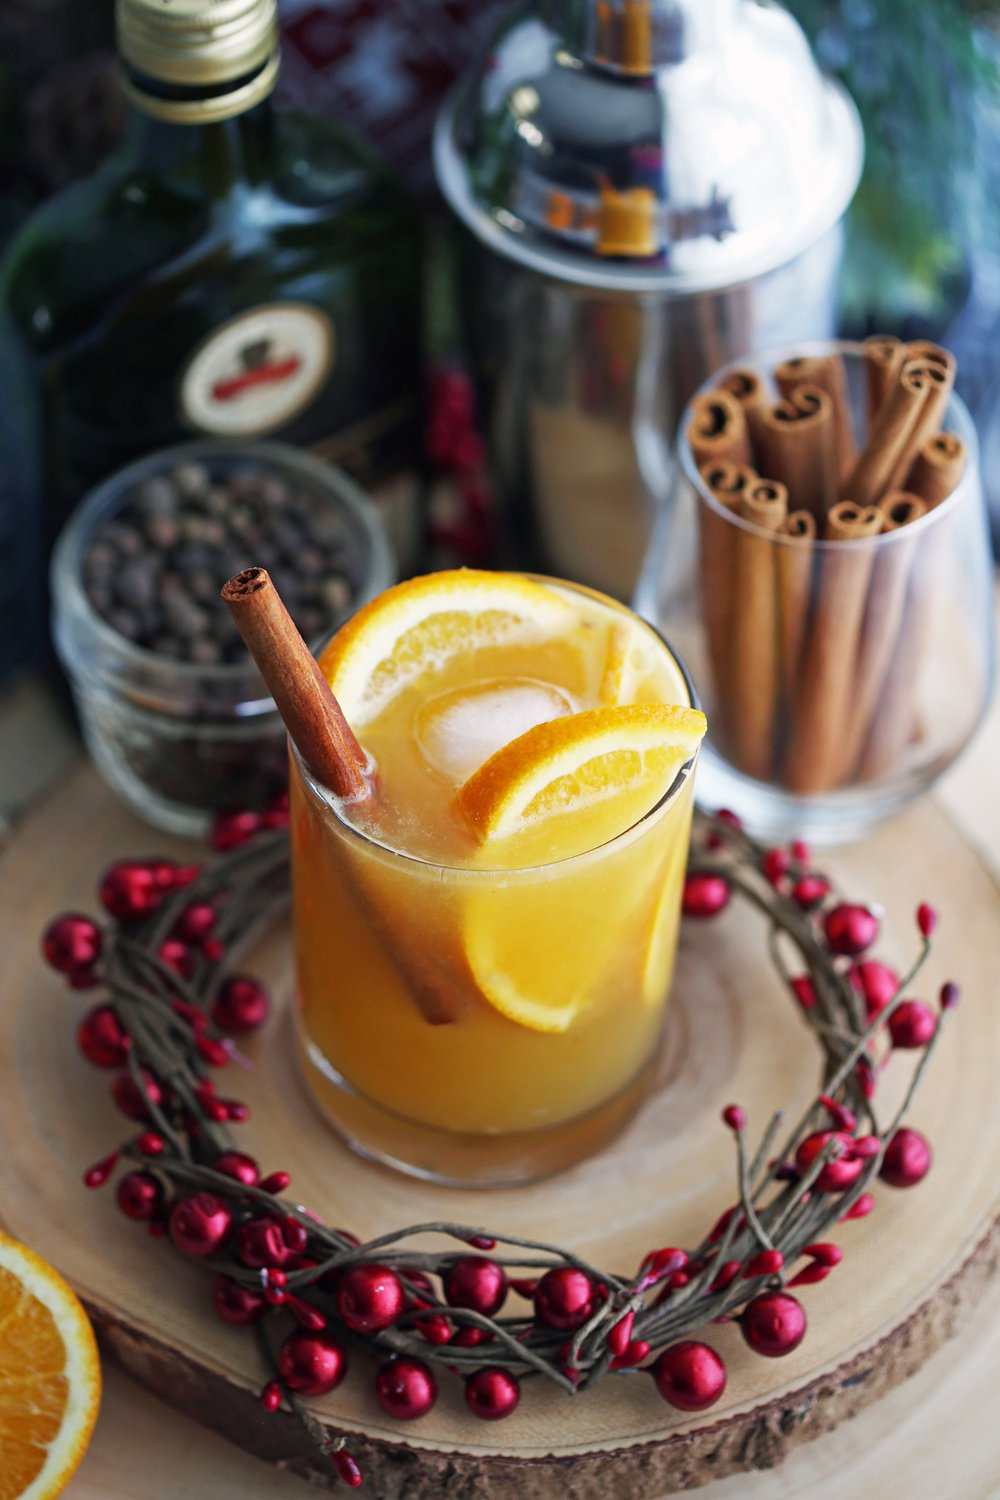 A glass of spiced orange brandy spritzer cocktail with orange slices and a cinnamon stick in it.